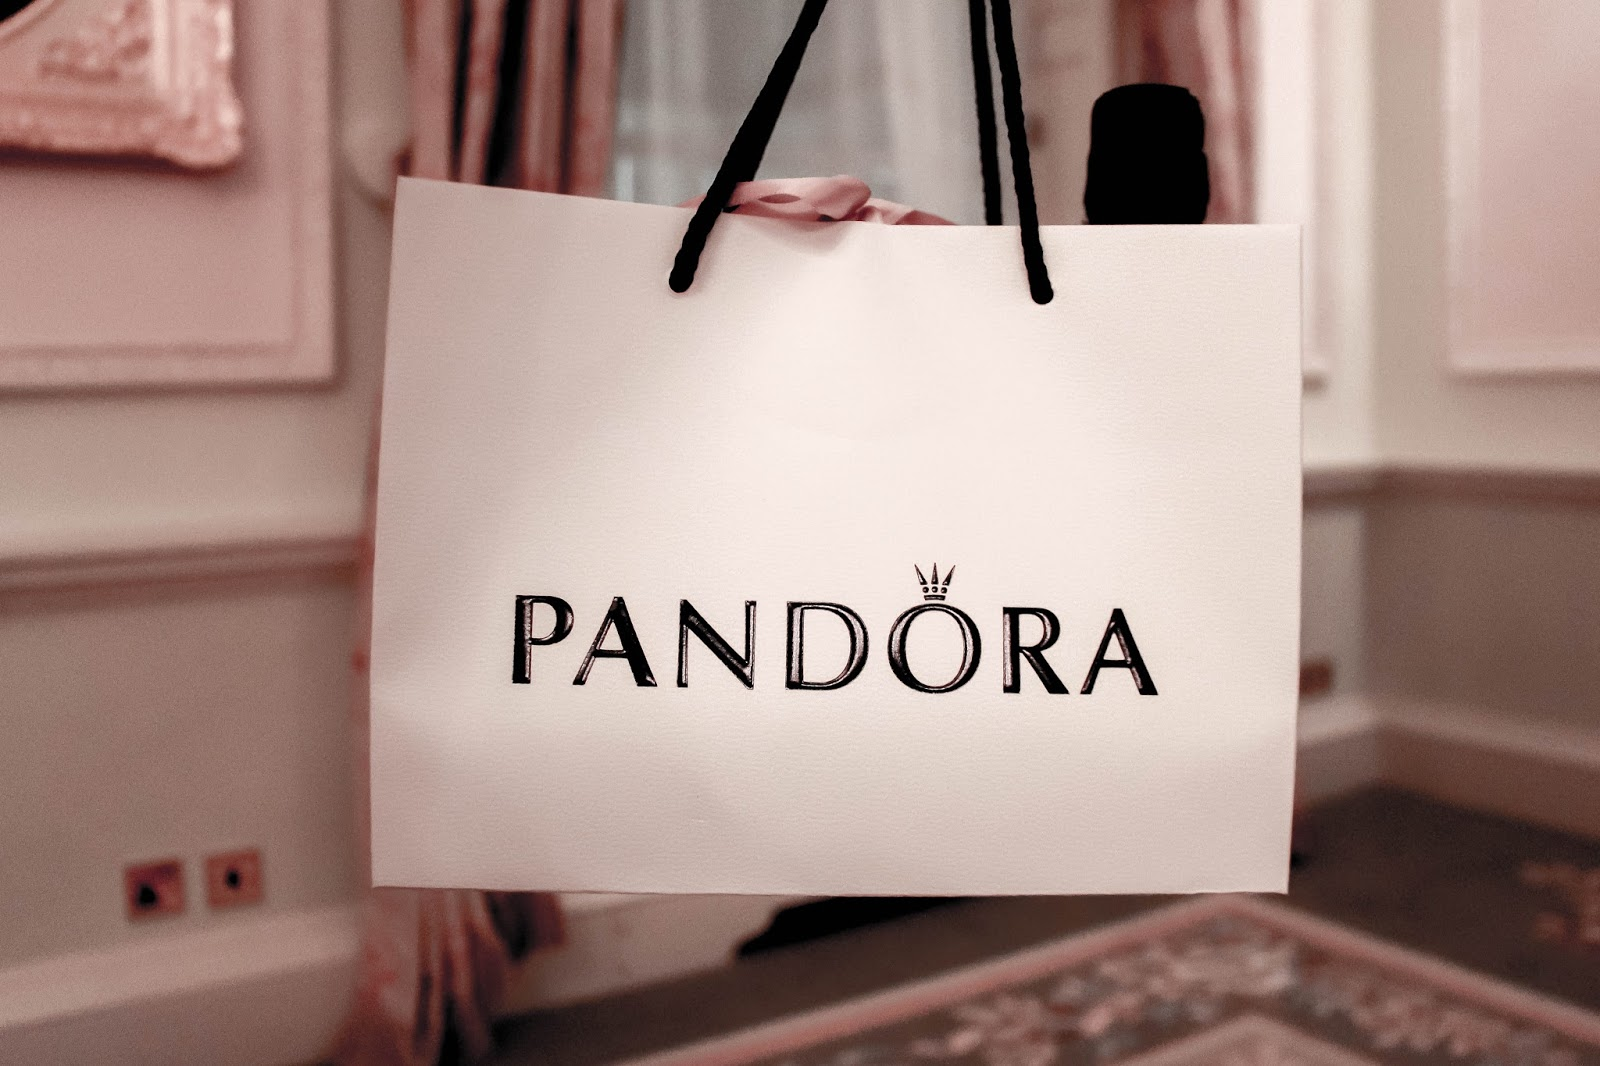 Pandora Gift Bag Fashion Bloggers Event at The Ritz